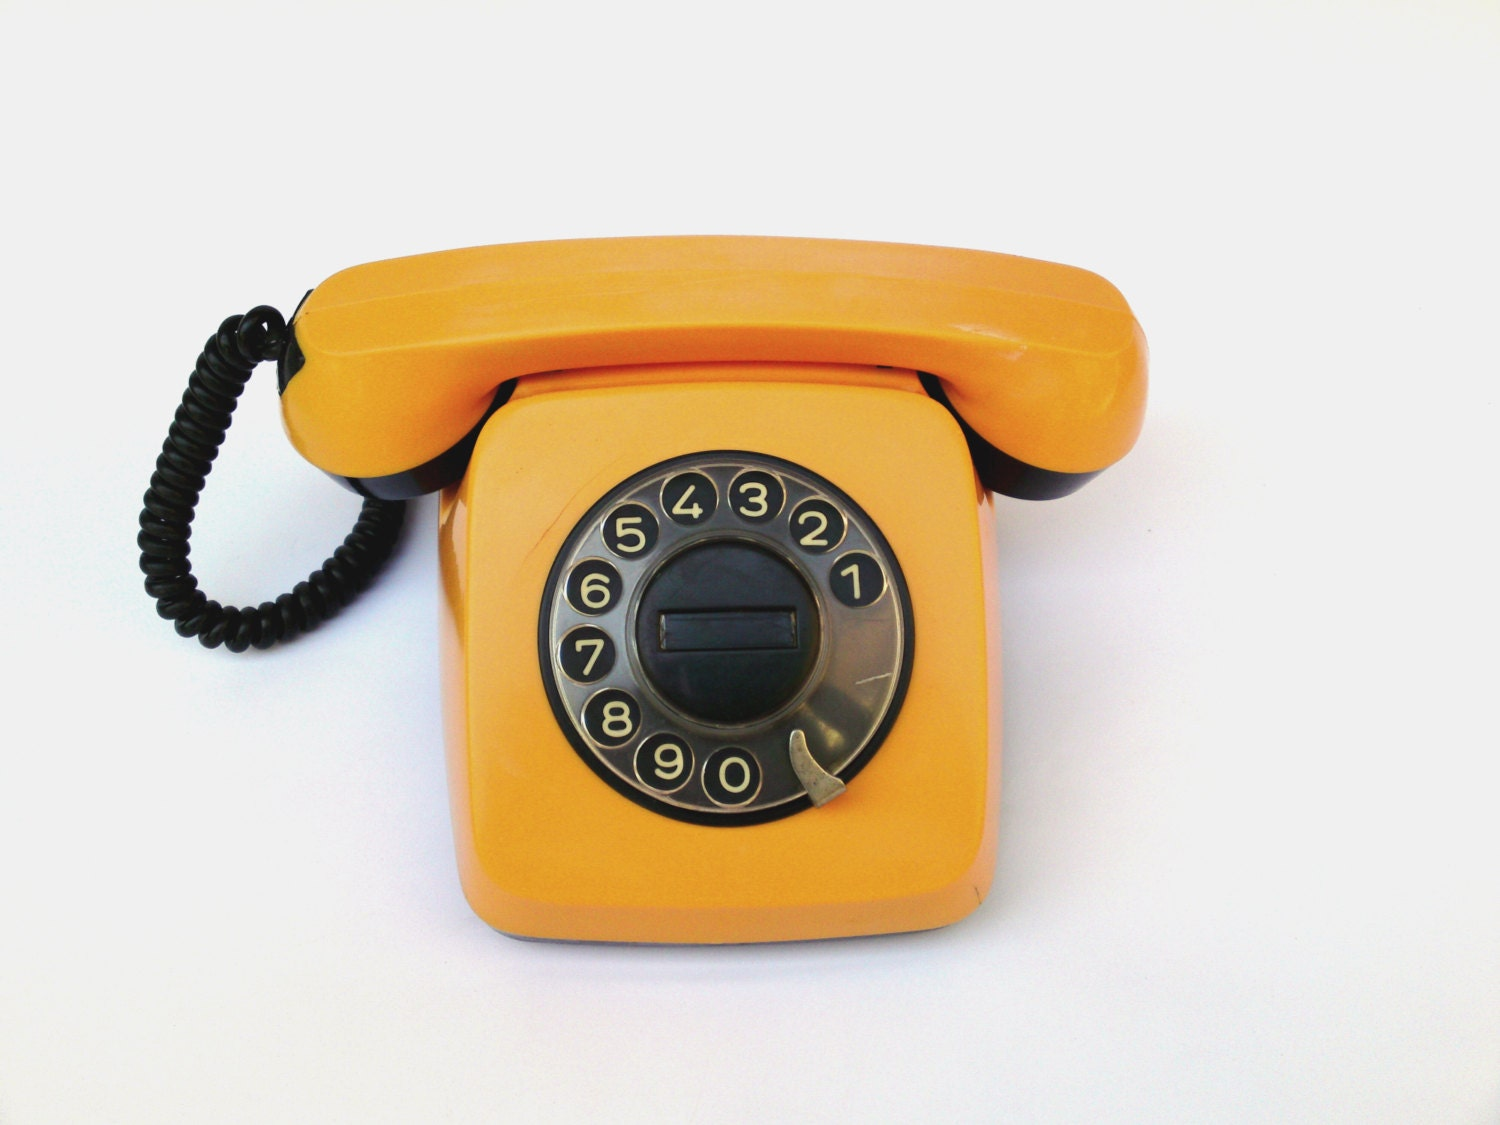 Vintage soviet union rotary phone TA-600 yellow rotary telephone rustic home decor bell made in Europe rotary dial phone rare collectibles